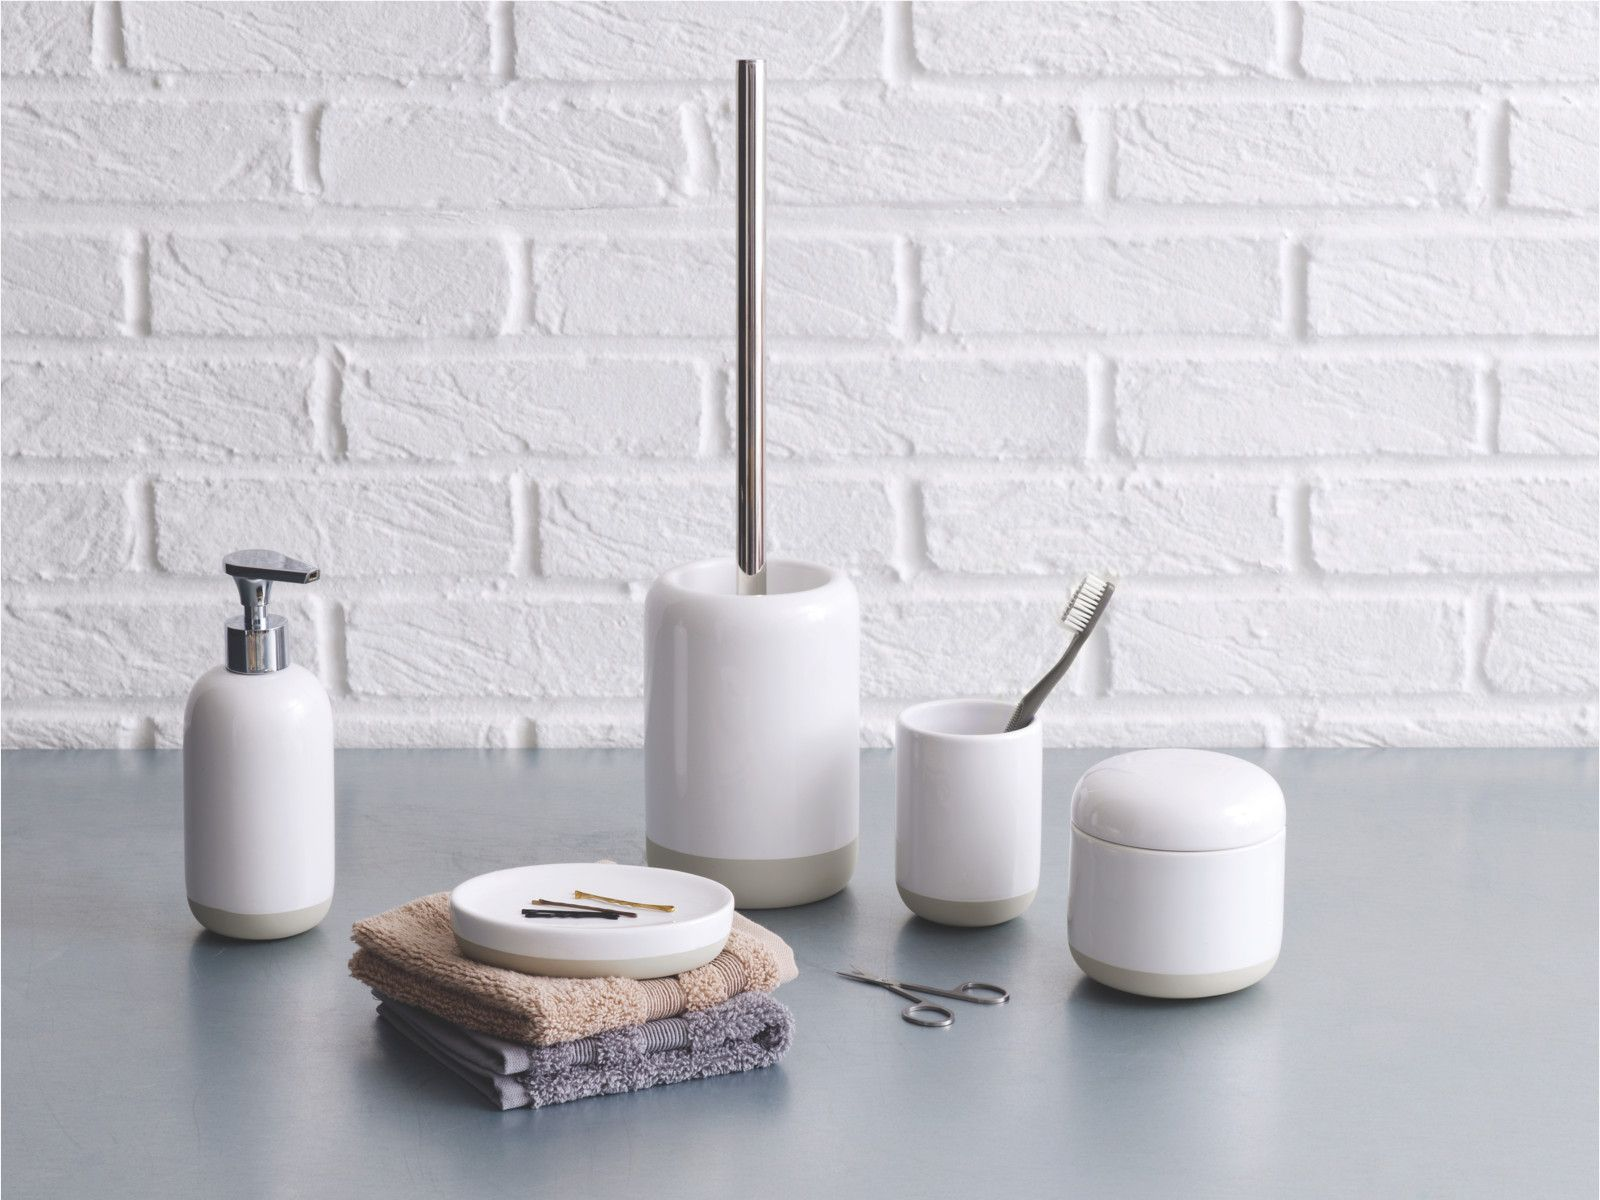 check out the new furniture and accessories from our new ss14 lookbook bathroom accessories setstoilet brushwhite furniturewhite ceramicssoap - White Bathroom Accessories Ceramic